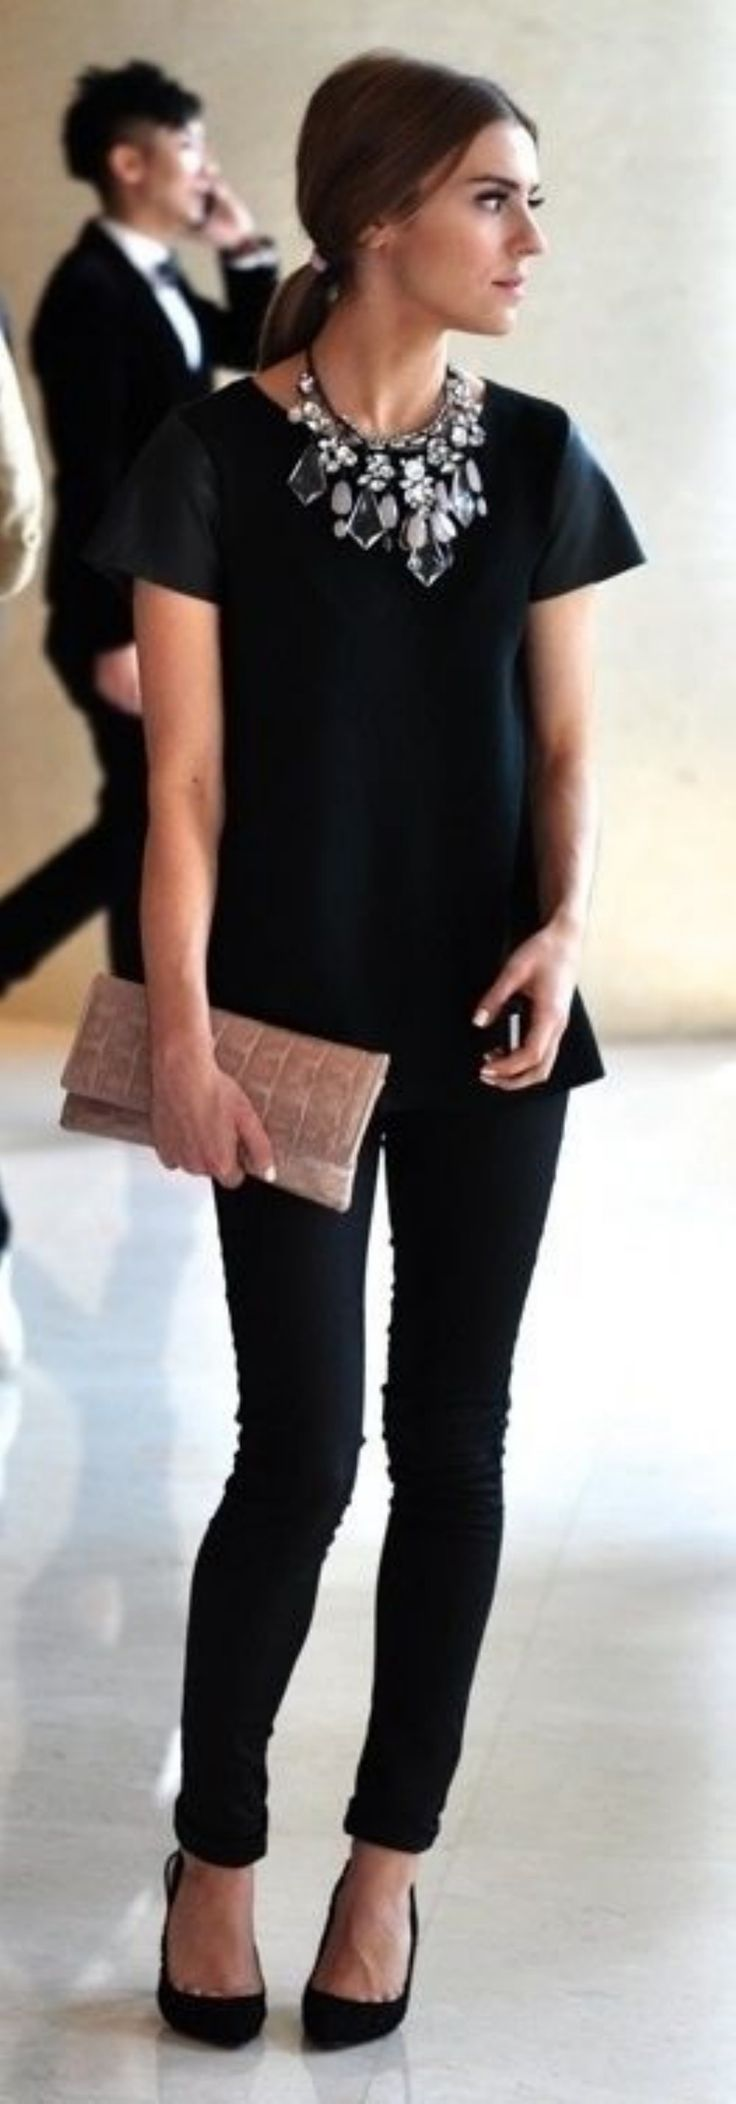 Cool Casual and Comfy Work Outfits Inspiration with Flats from https://www.fashionetter.com/2017/04/13/casual-comfy-work-outfits-inspiration-flats/